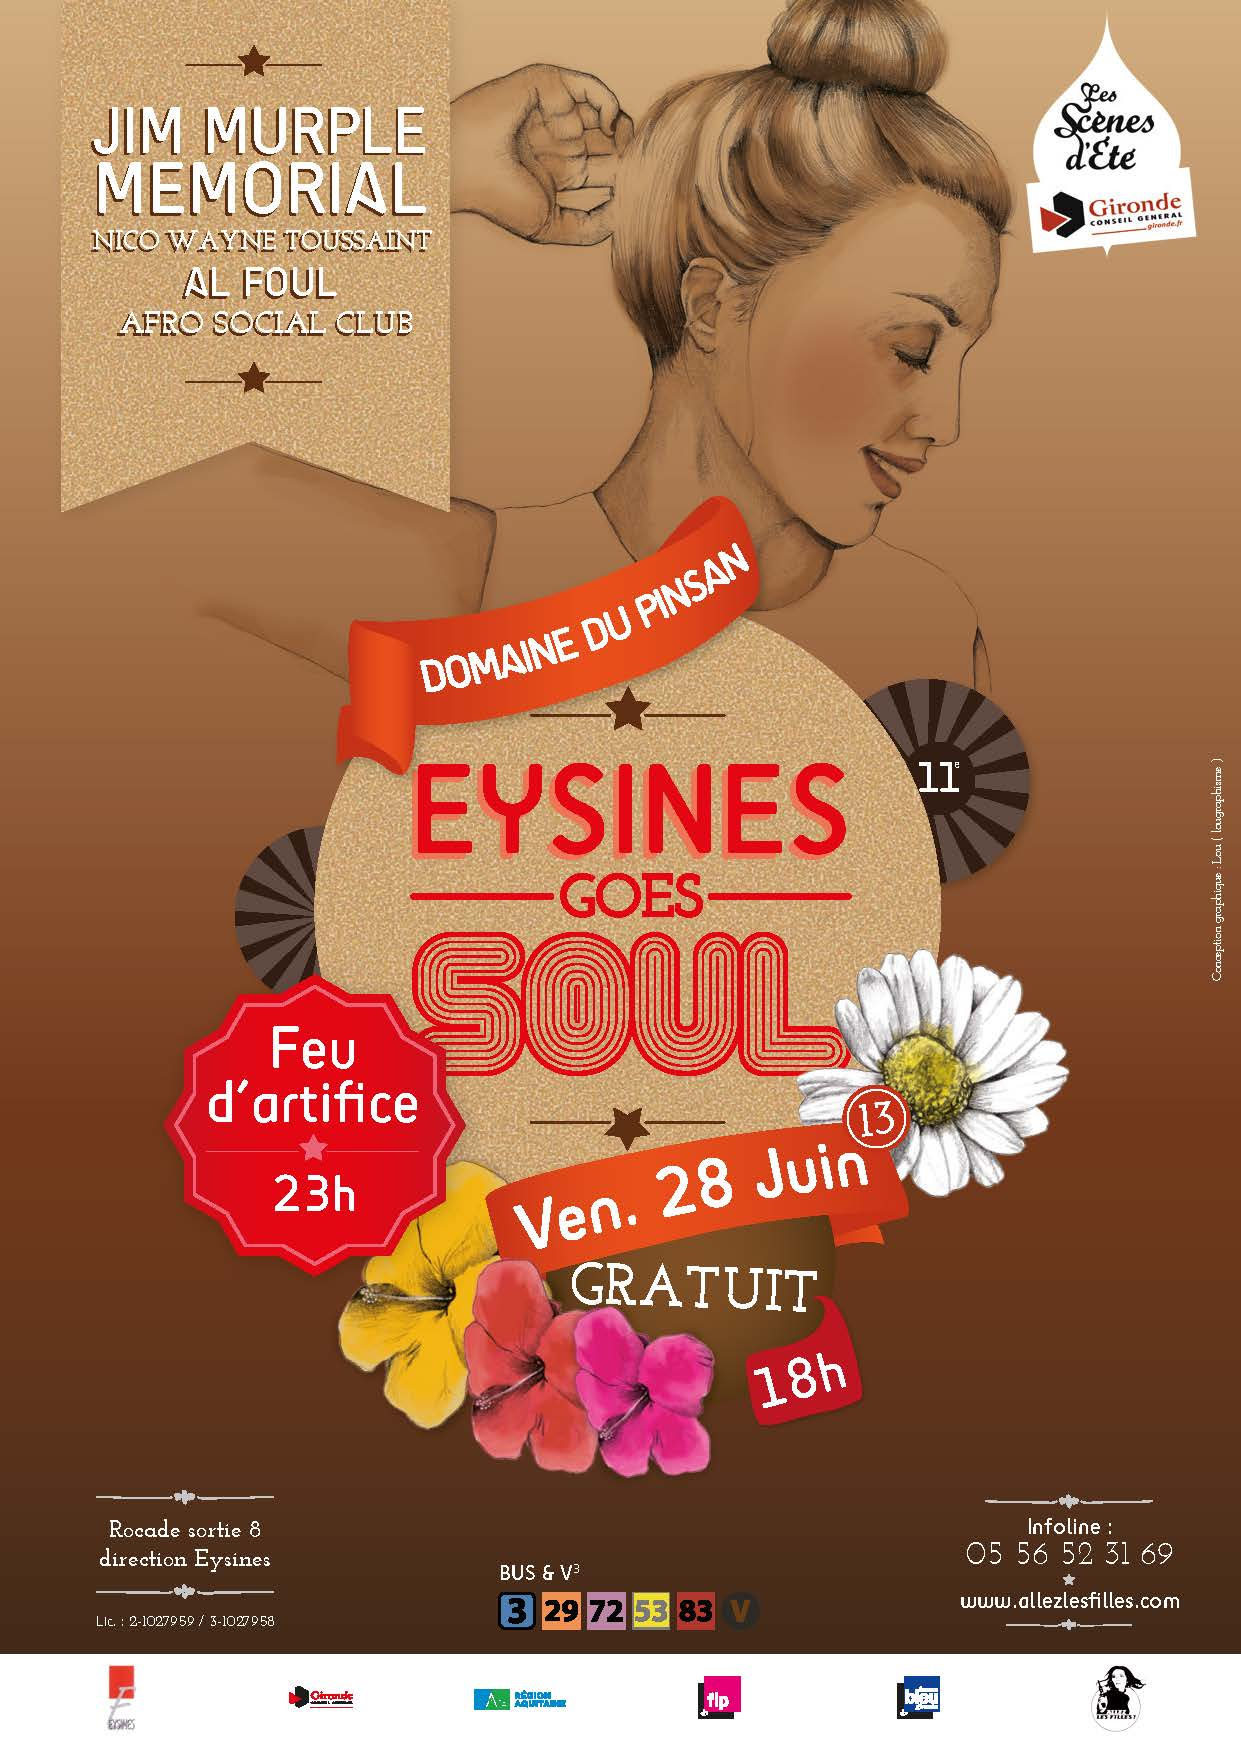 Eysines Goes Soul 2013